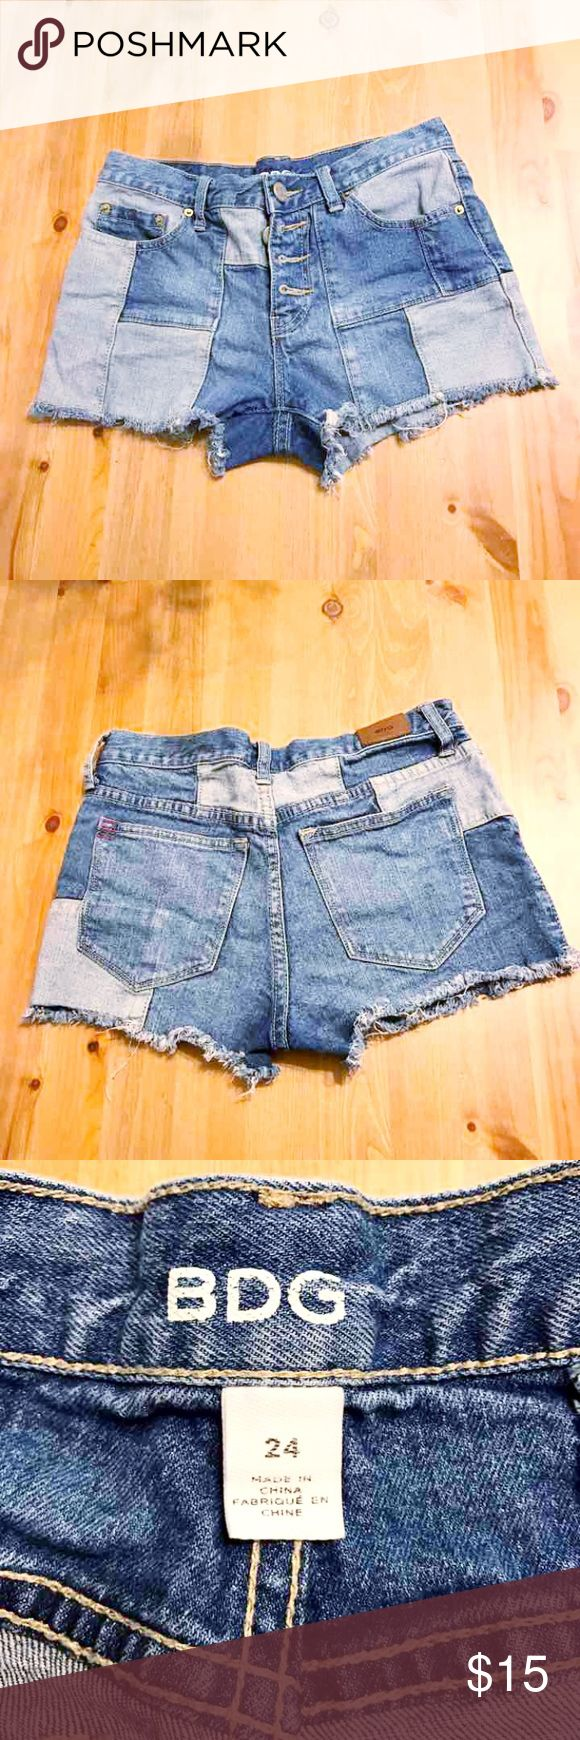 BDG cutoff jean shorts BDG denim patch cutoff jean shorts. Size 24 medium to high rise. Five pocket with button fly. Excellent condition BDG Shorts Jean Shorts